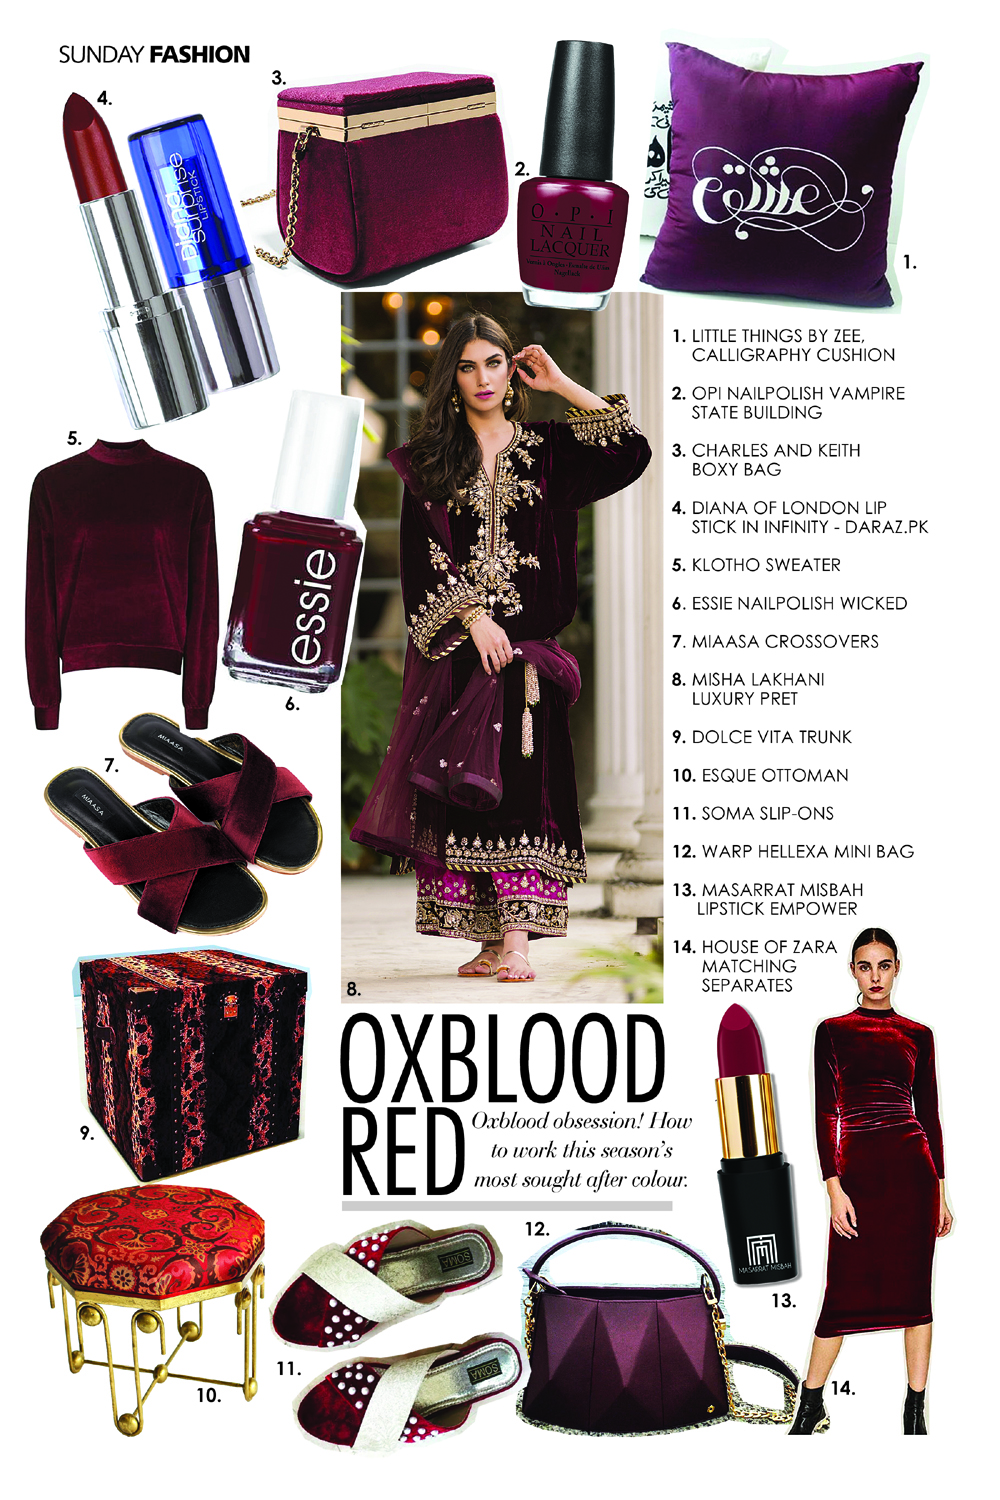 Oxblood red moodboard Jan 8-770 copy